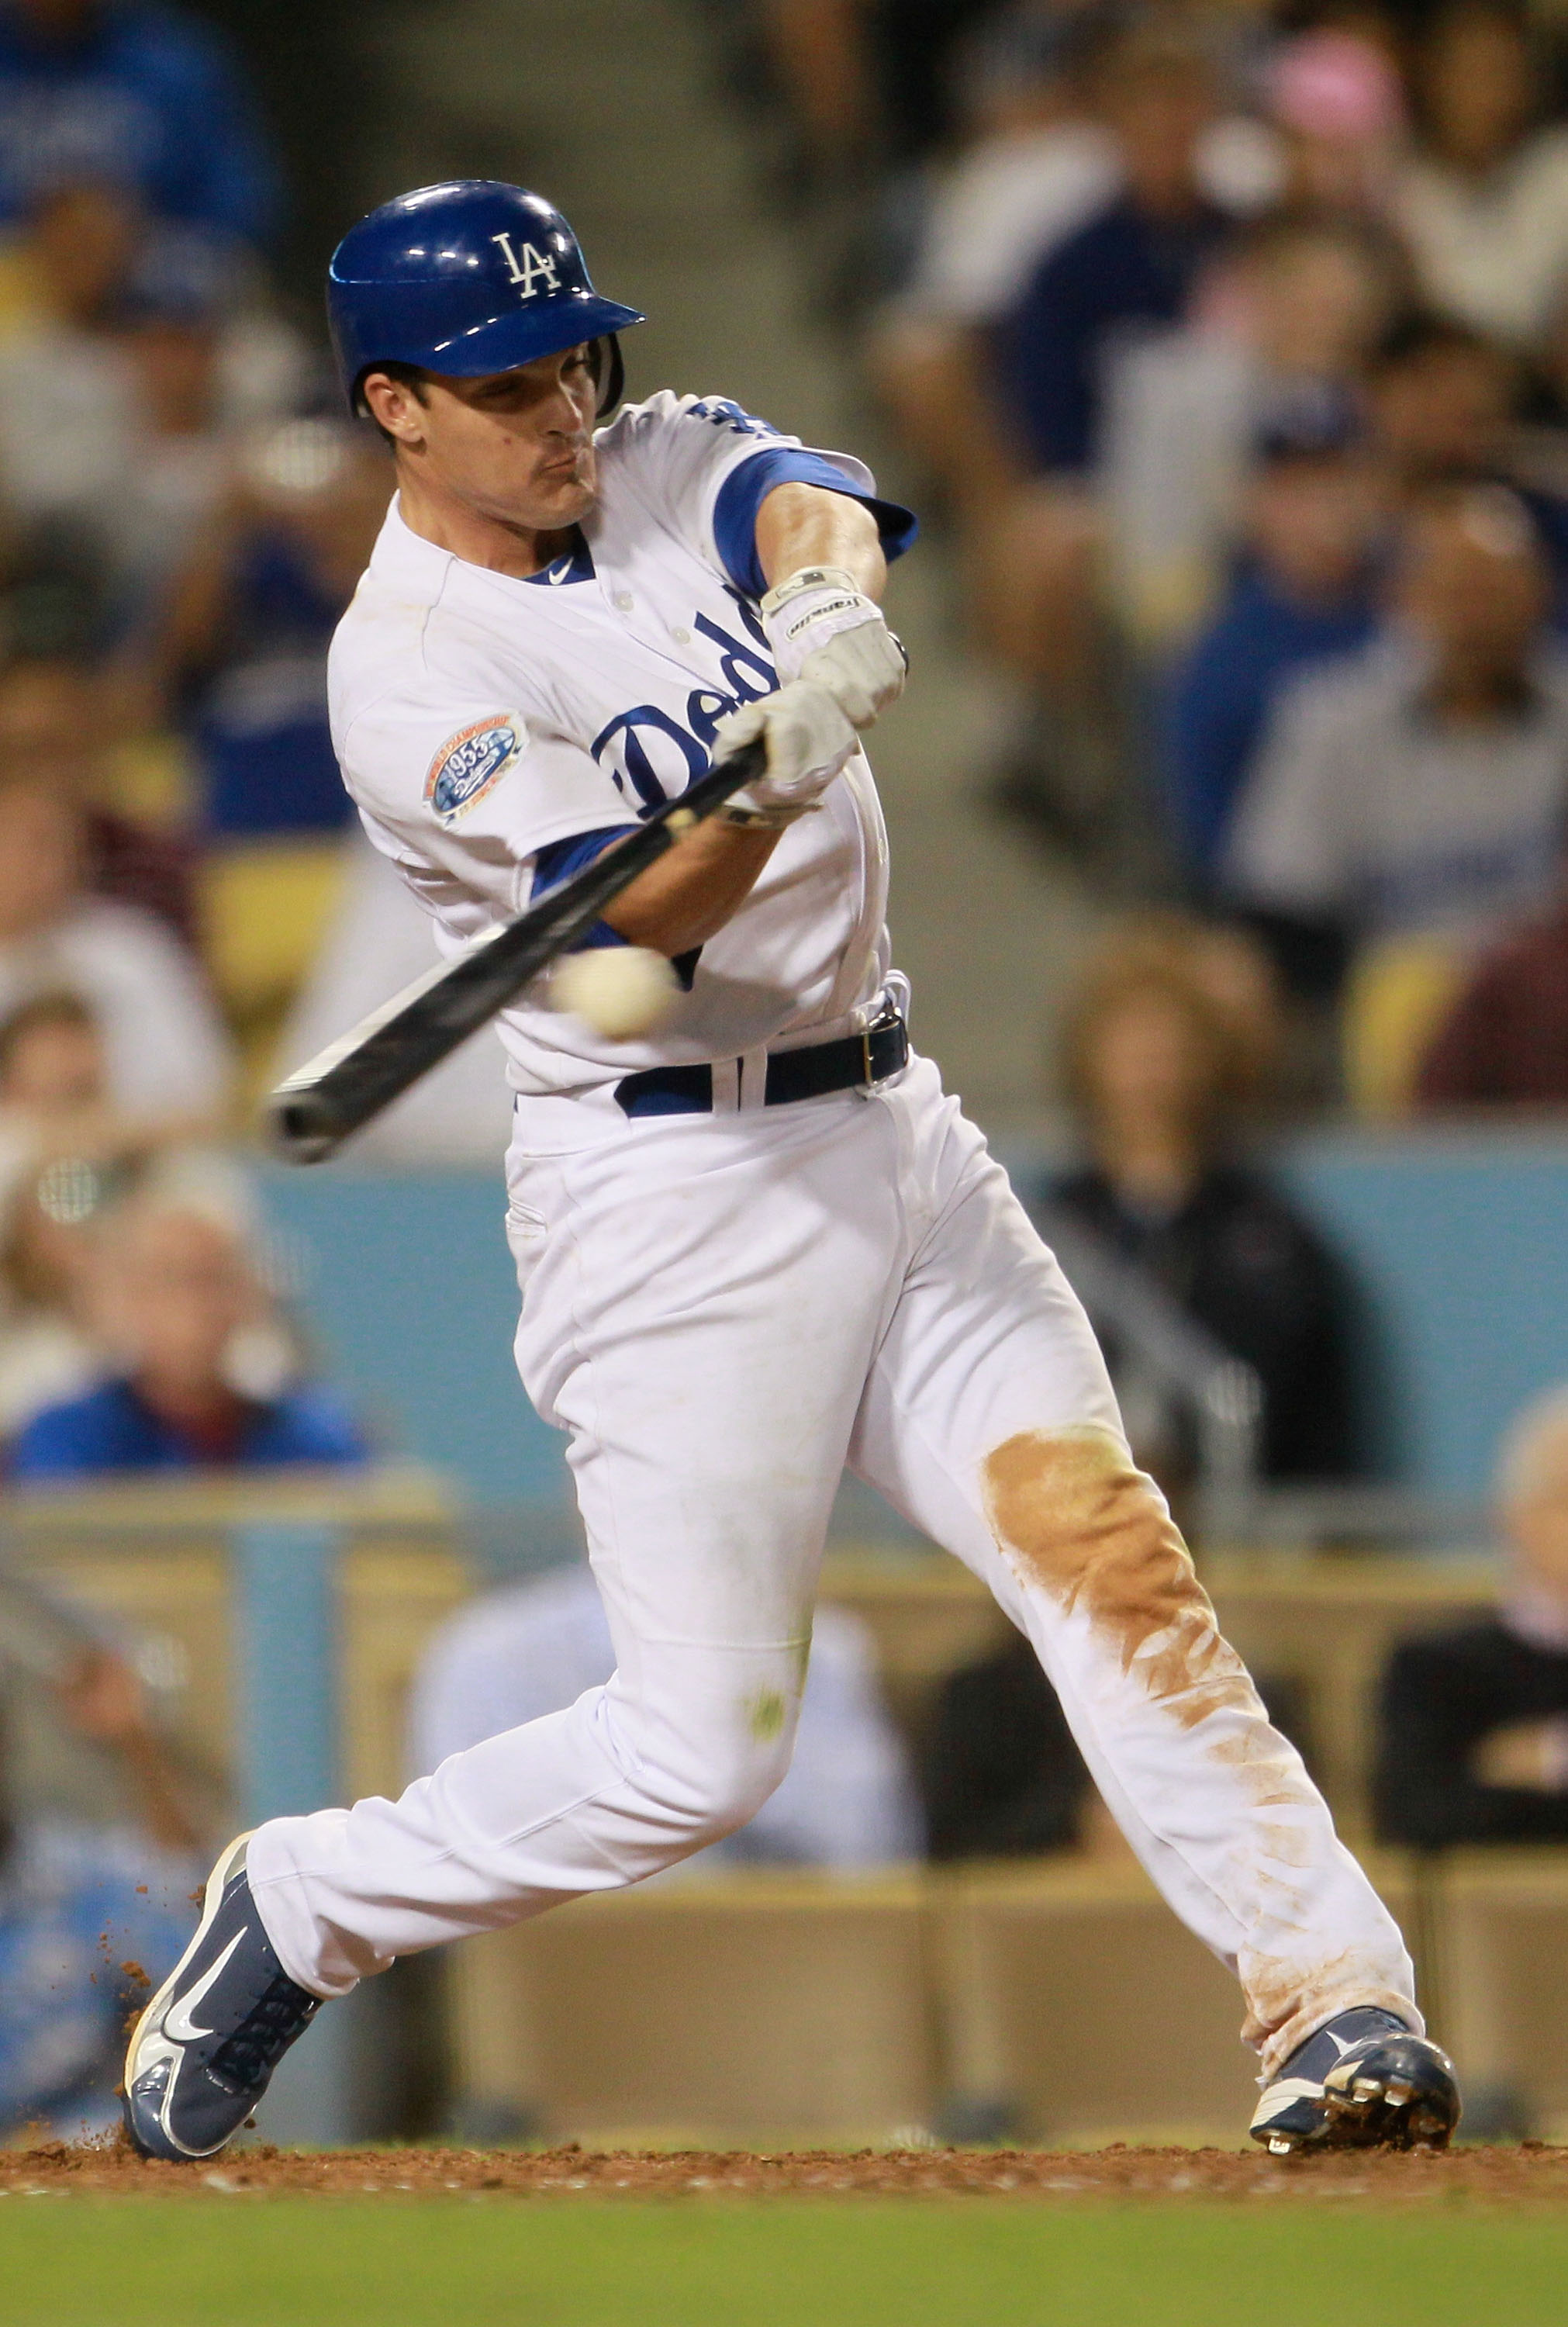 LOS ANGELES, CA - AUGUST 04:  Ryan Theriot #13 of the Los Angeles Dodgers hits a double scoring two runs in the eighth inning against the San Diego Padres at Dodger Stadium on August 4, 2010 in Los Angeles, California. The Dodgers defeated the Padres 9-0.